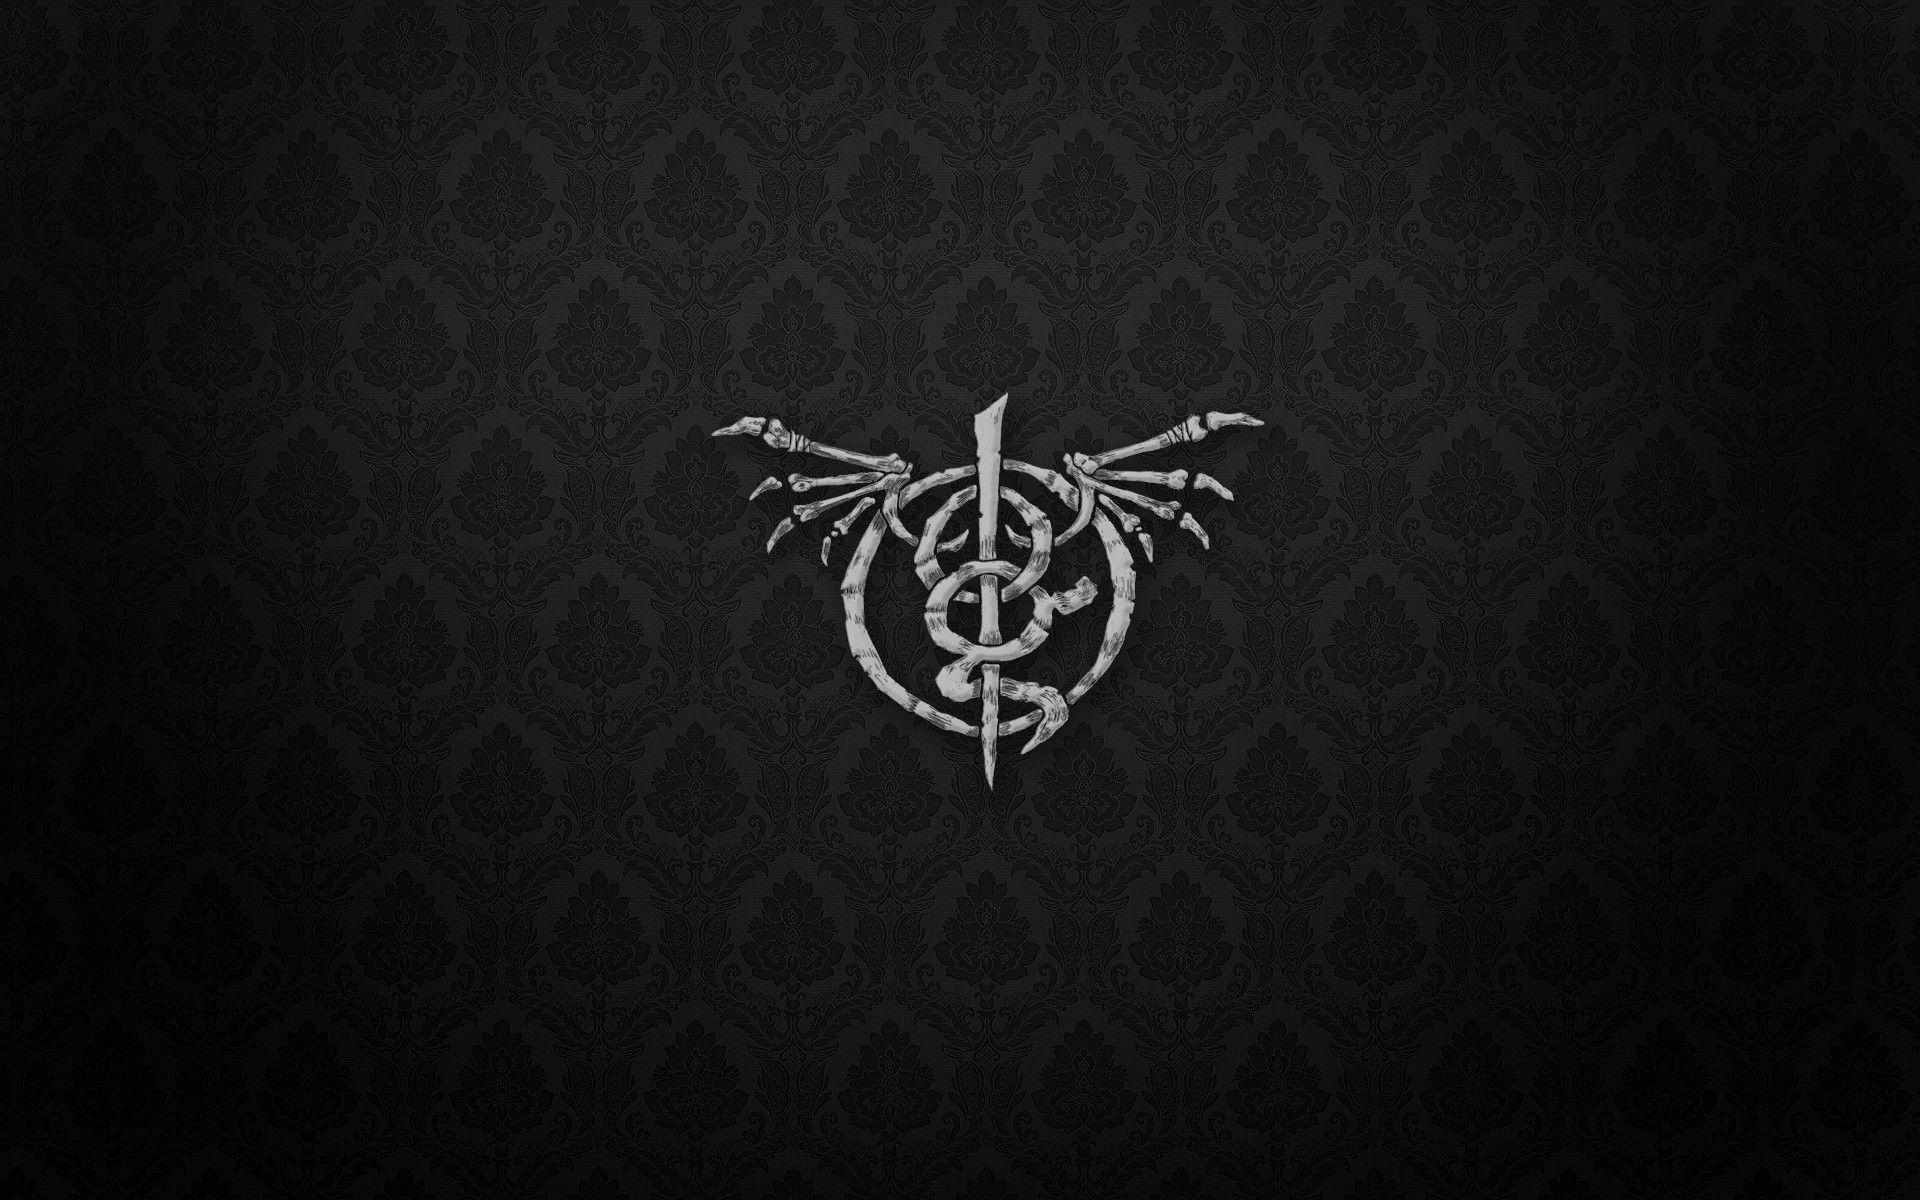 Band Logo Wallpapers Group 79